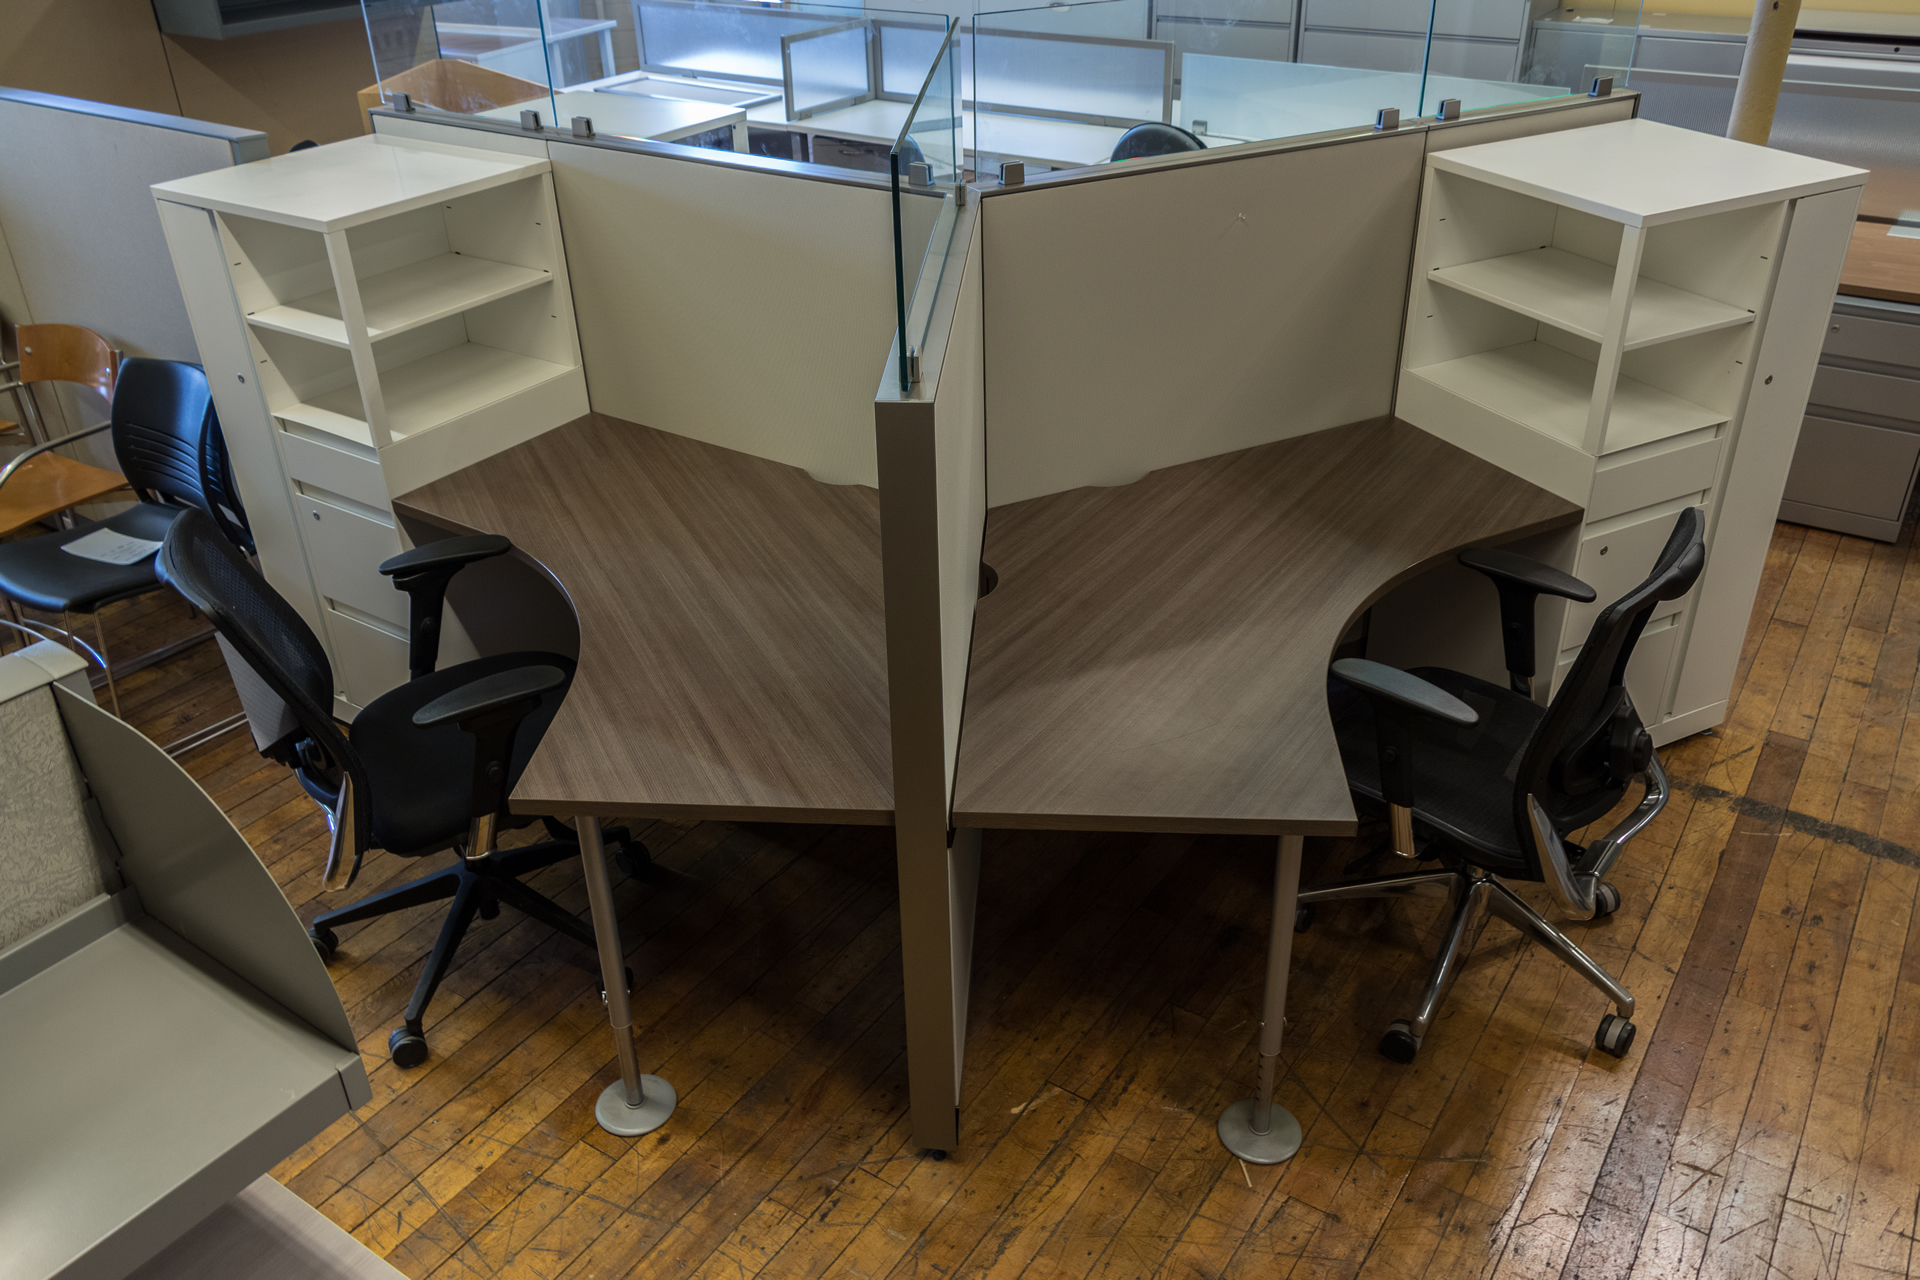 Steelcase Answer 3-Pod Workstations